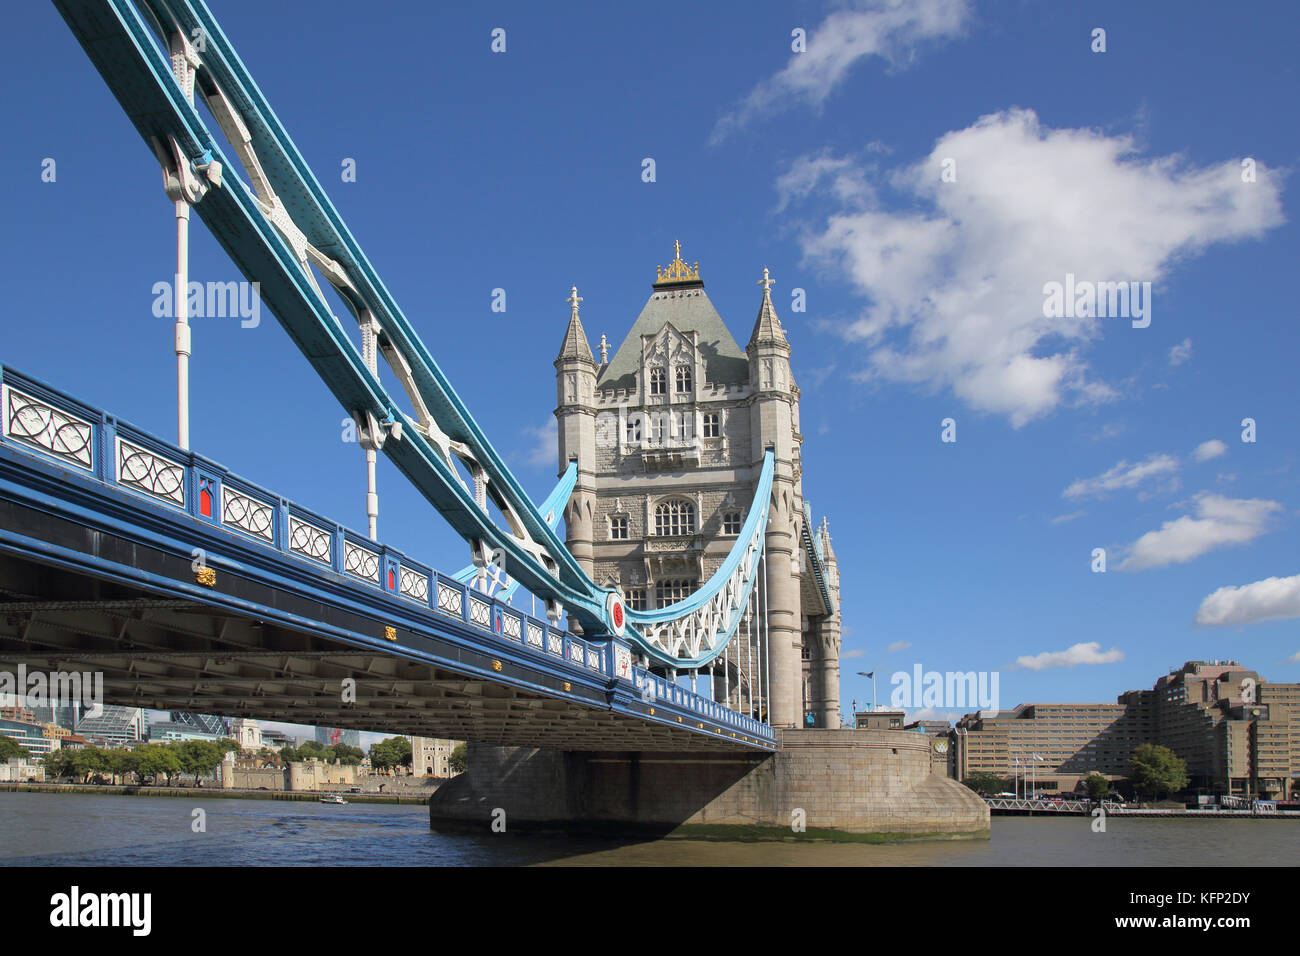 the historic tower bridge across the river thames in london Stock Photo